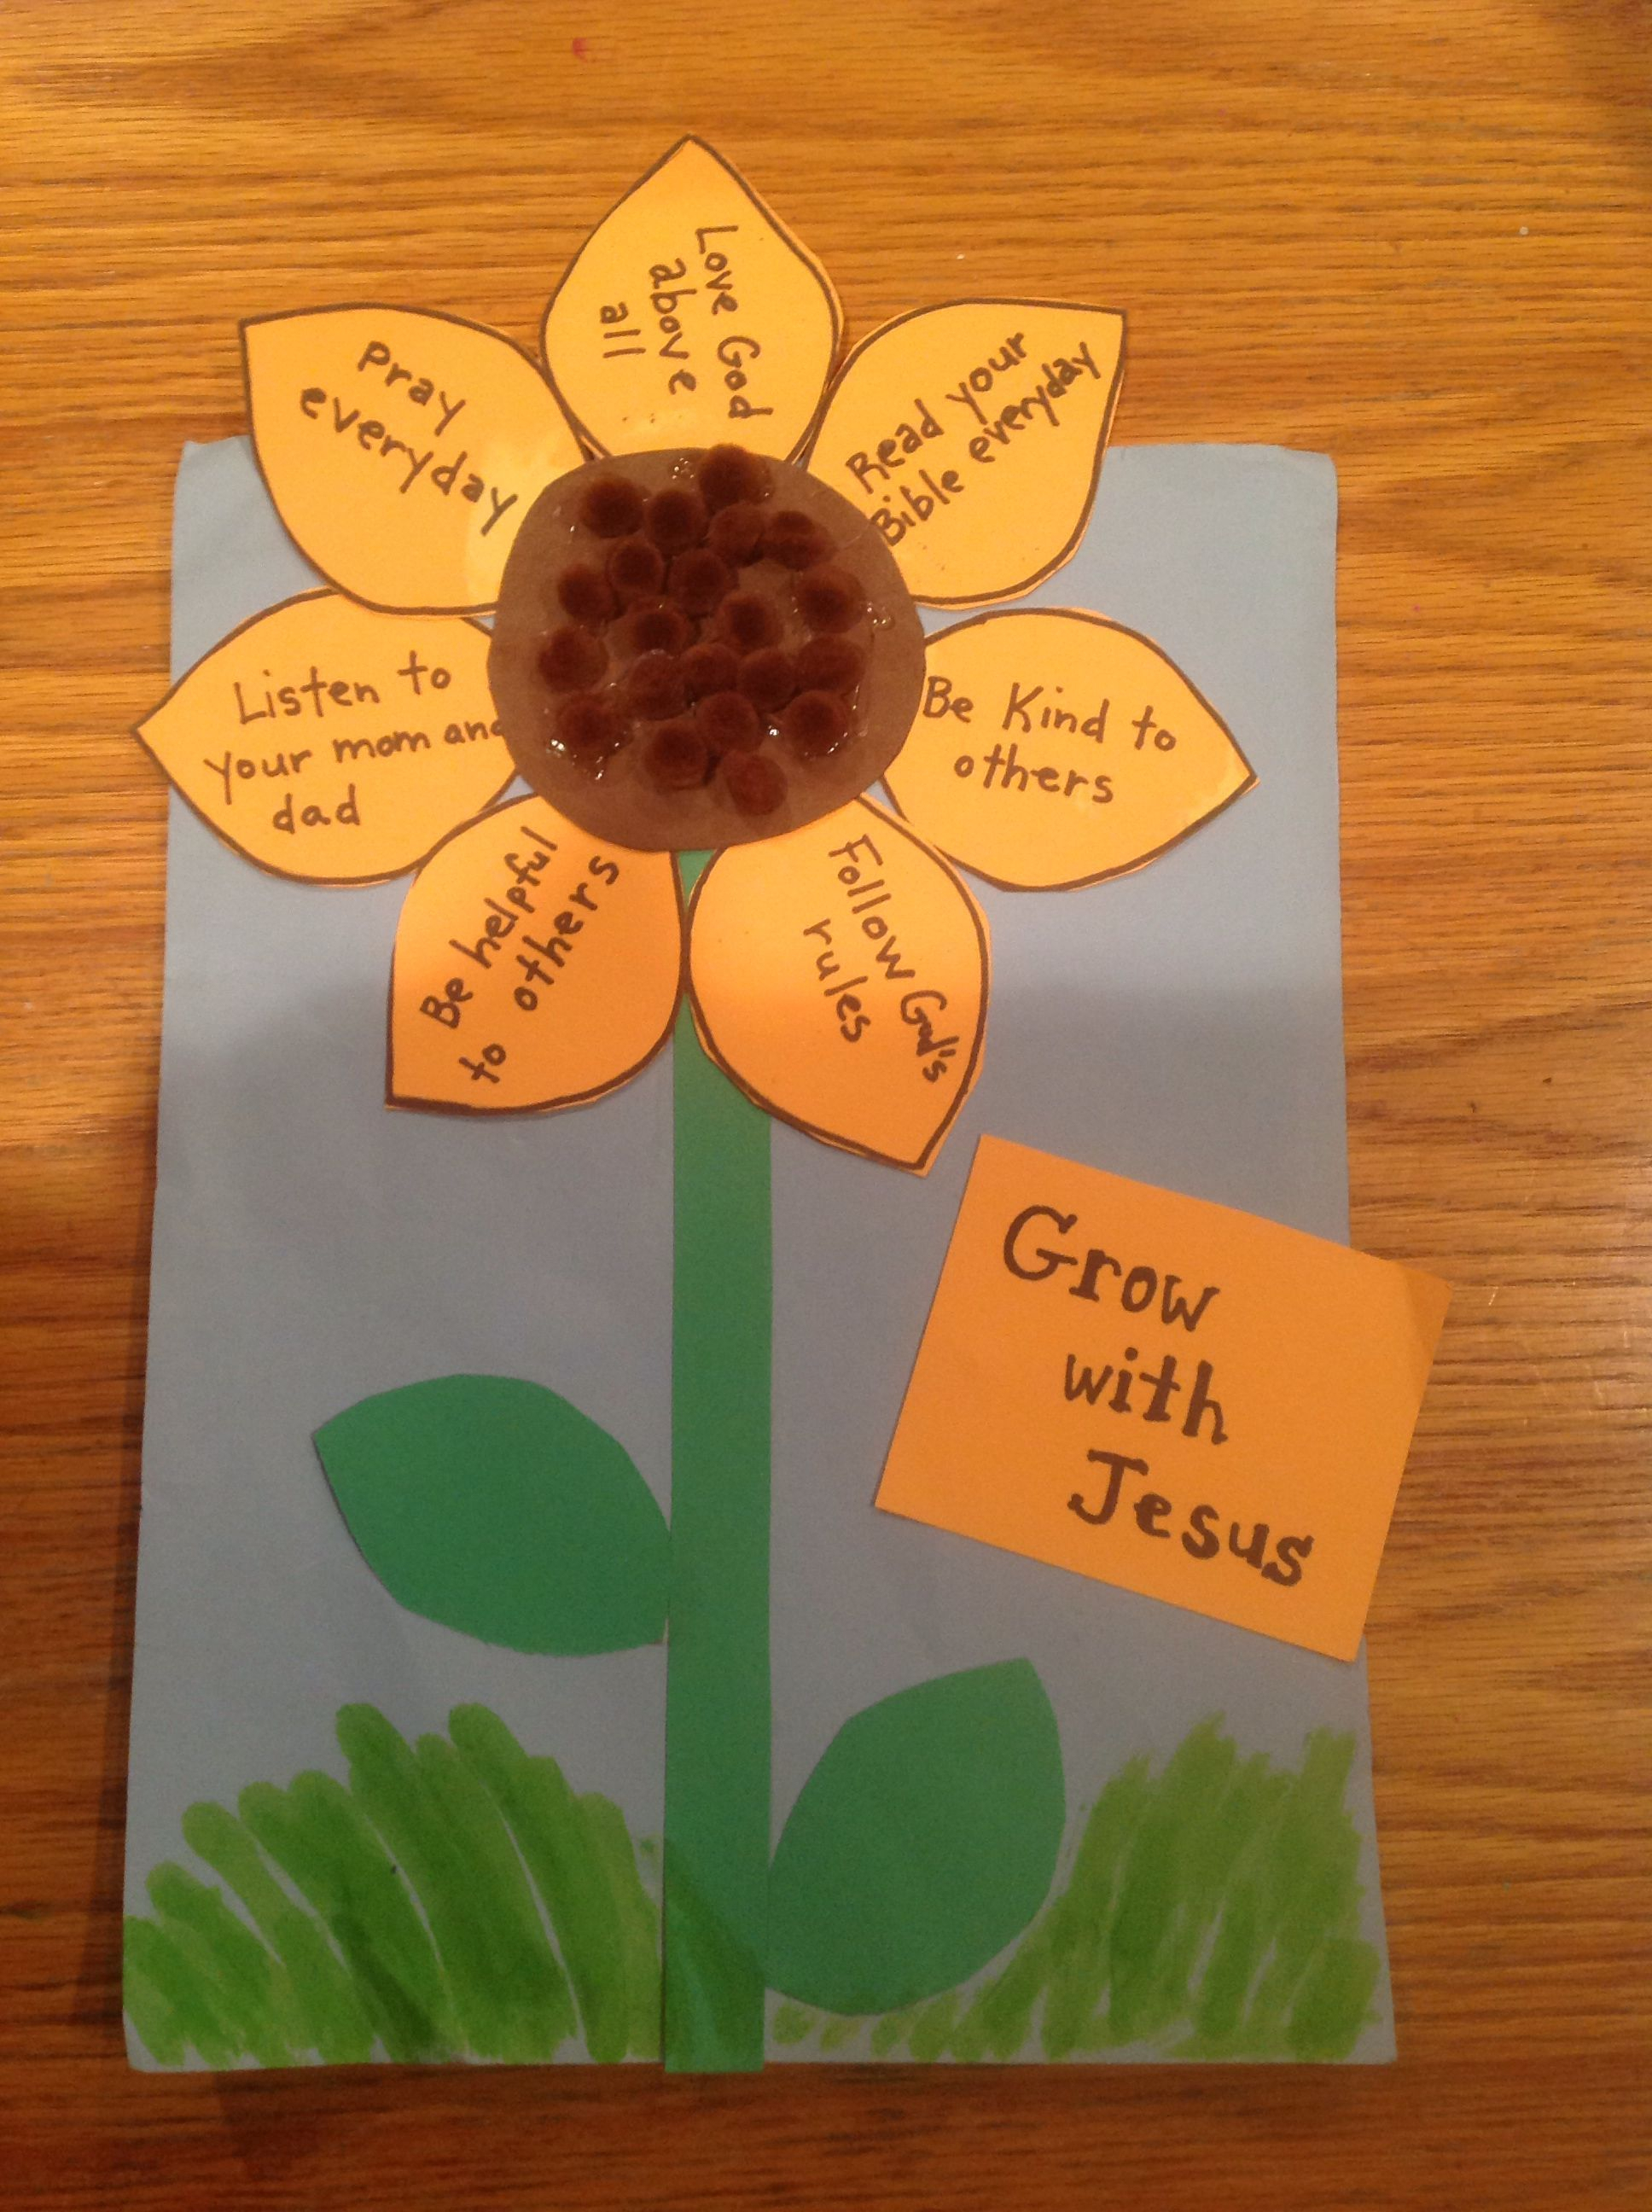 10 Nice Sunday School Ideas For Toddlers grow with jesus bible craftlet bible craftslet sunday 2020